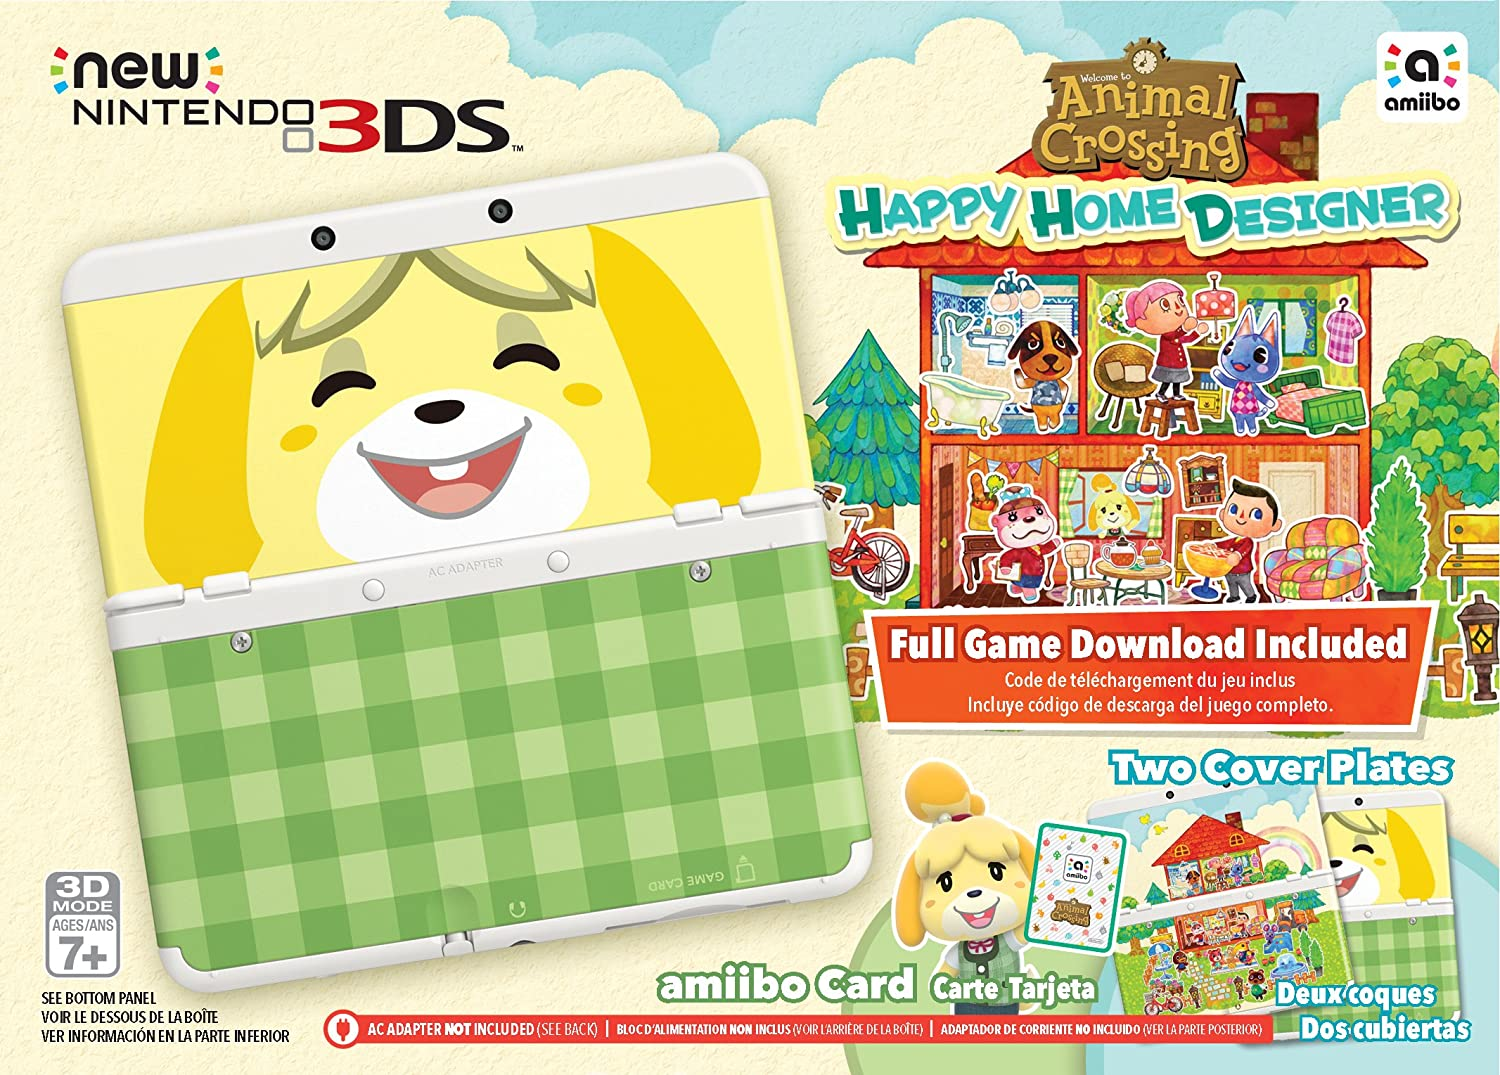 nintendo animal crossing happy home designer bundle w amiibo card limited edition new 3ds console nintendo 3ds amazonca computer and video games - Personal Home Designer